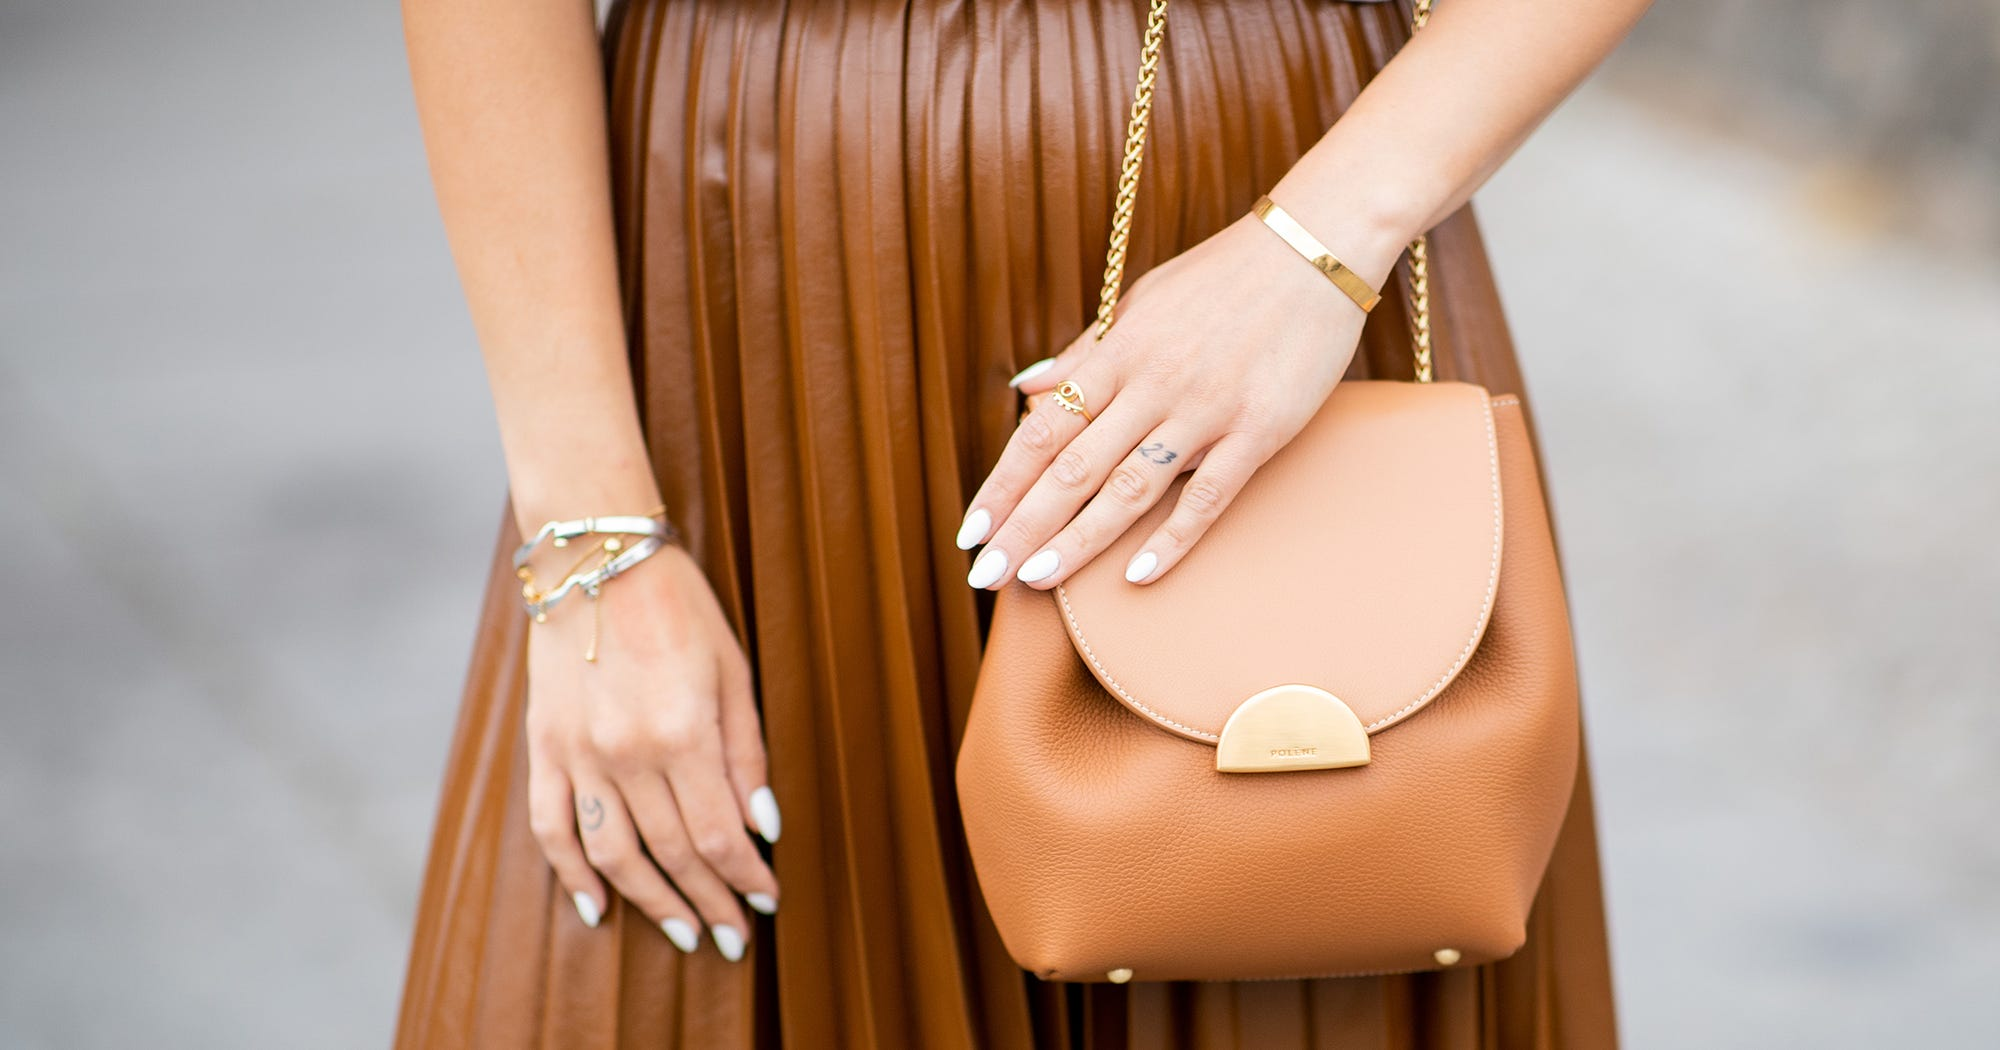 8 Fall Nail Colors That Are Going To Be Huge This Year